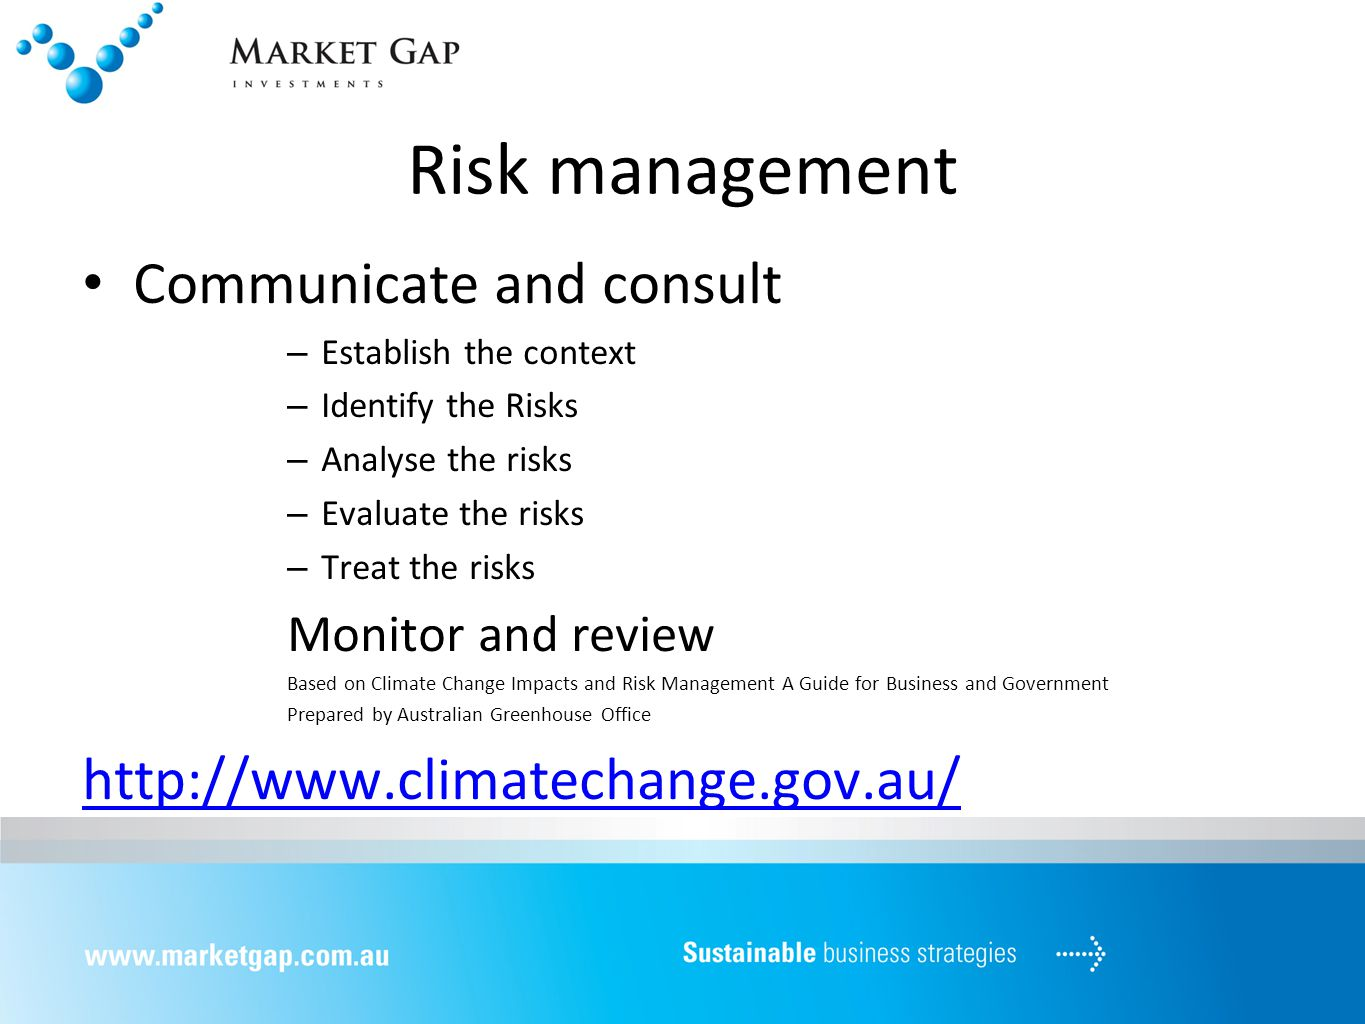 Risk management Communicate and consult – Establish the context – Identify the Risks – Analyse the risks – Evaluate the risks – Treat the risks Monitor and review Based on Climate Change Impacts and Risk Management A Guide for Business and Government Prepared by Australian Greenhouse Office http://www.climatechange.gov.au/